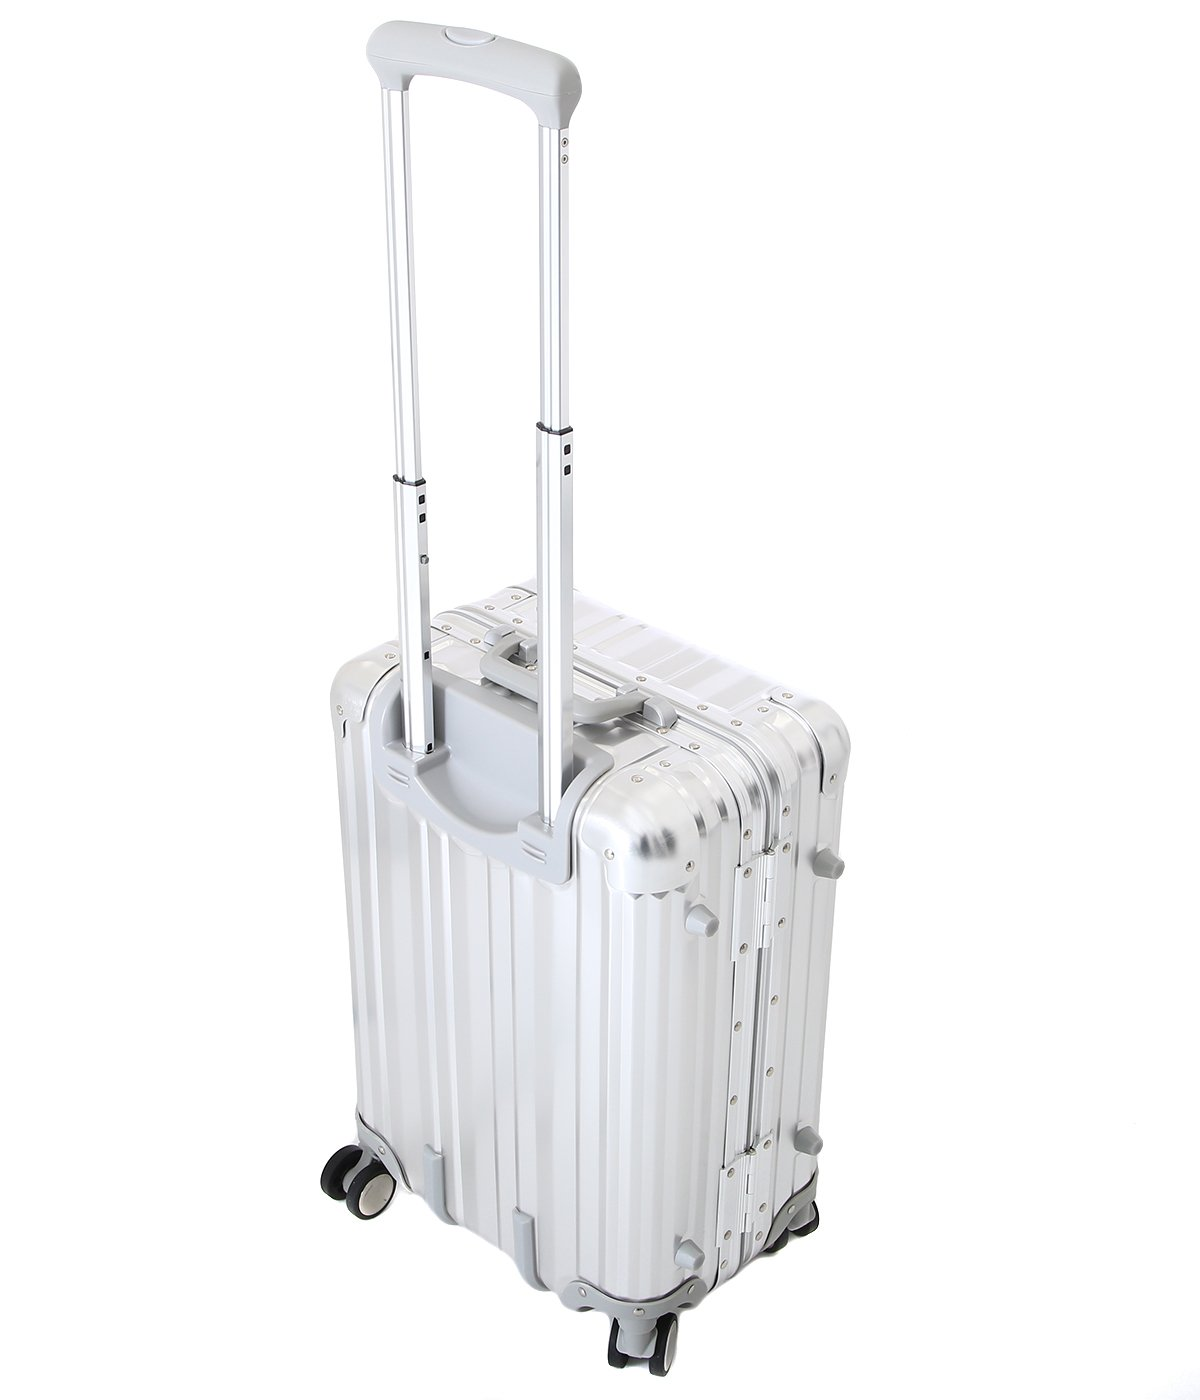 Aileron 20-inch Spinner Suitcase